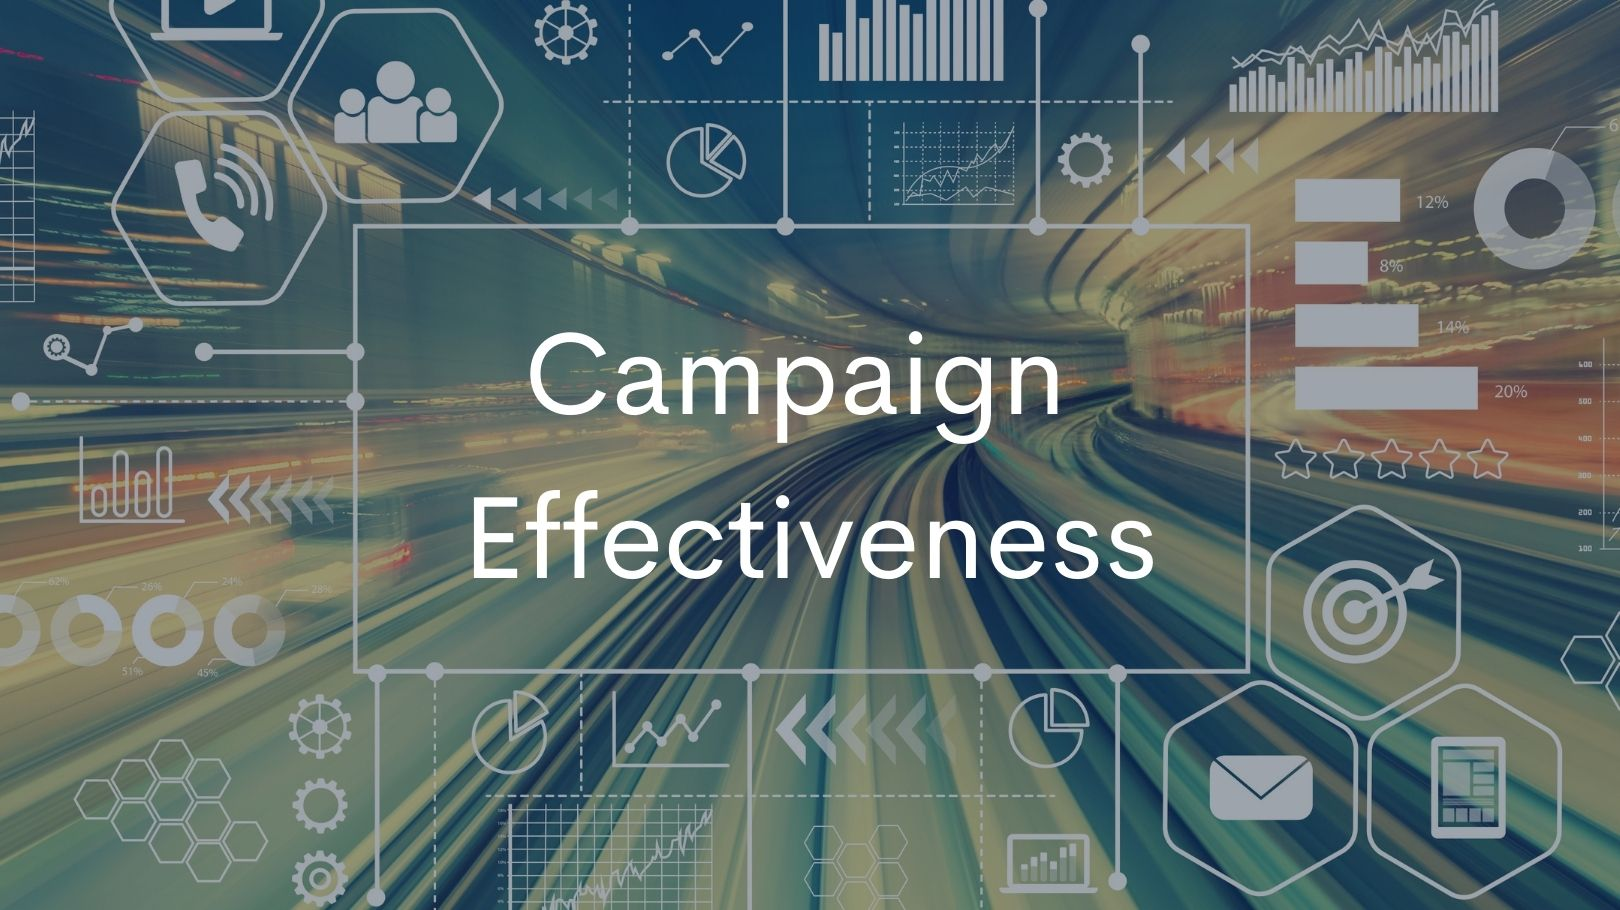 How to Measure Campaign Effectiveness